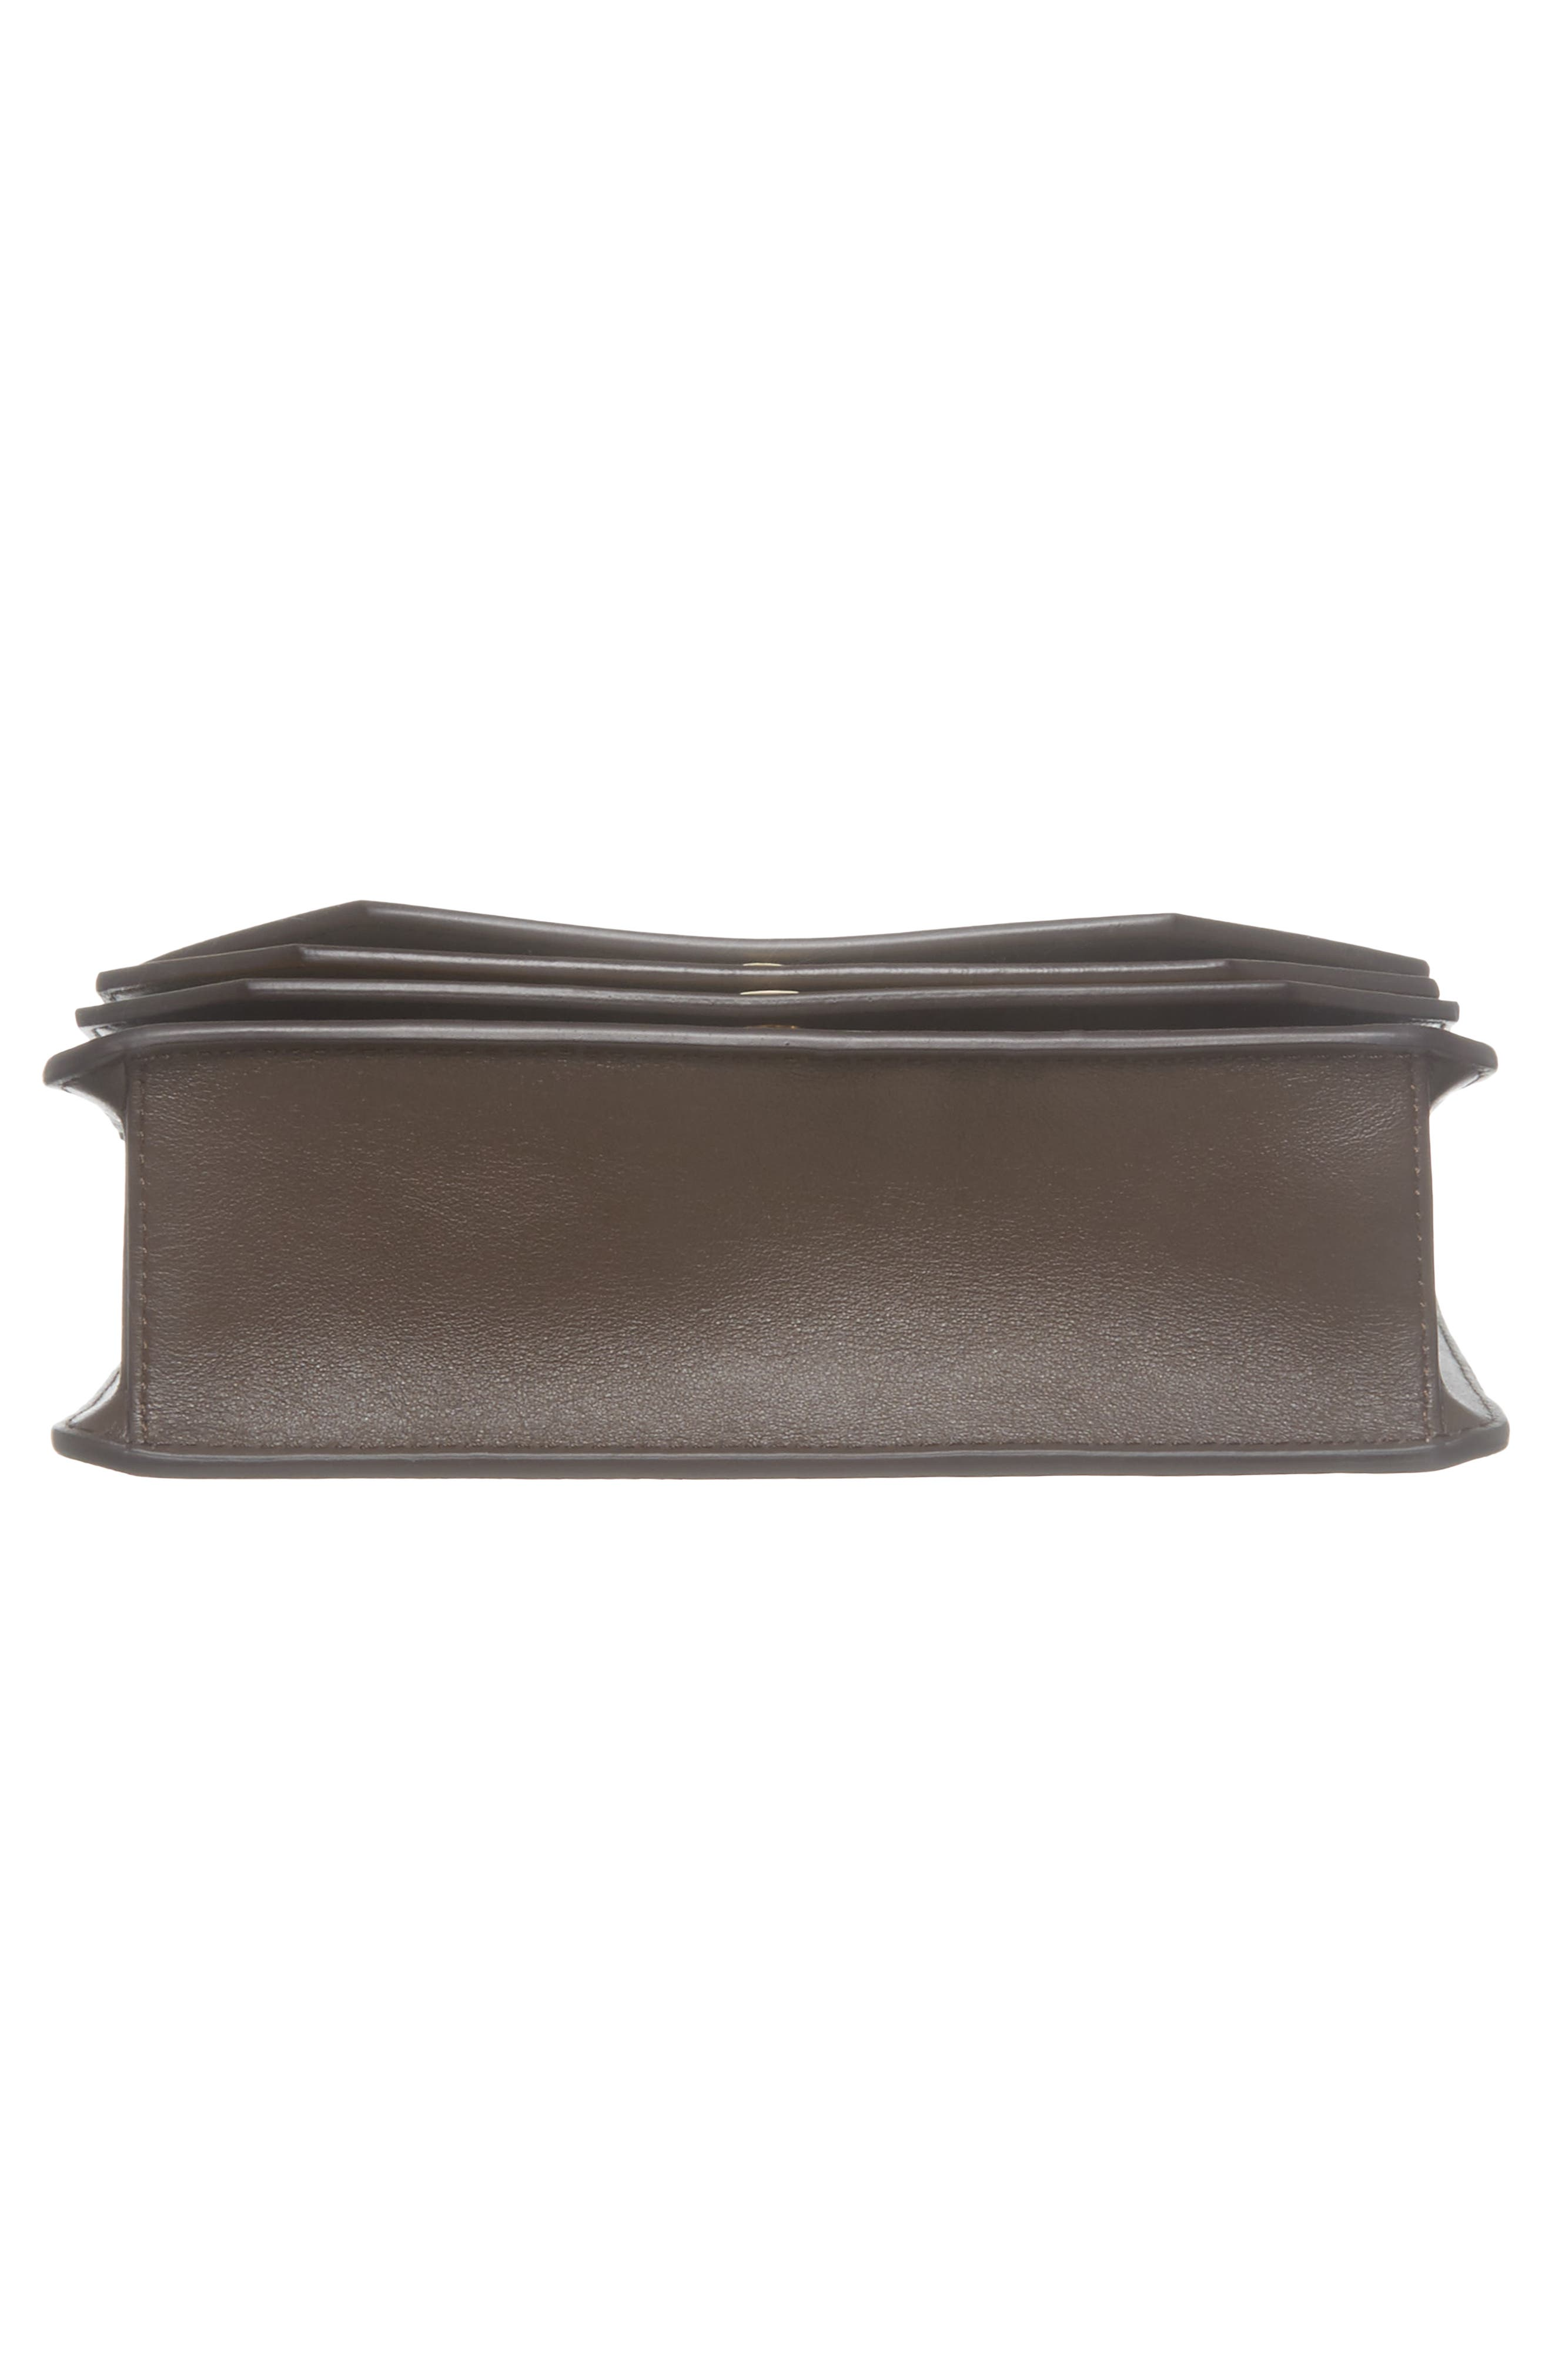 Multiflap Calfskin Leather Clutch,                             Alternate thumbnail 6, color,                             401